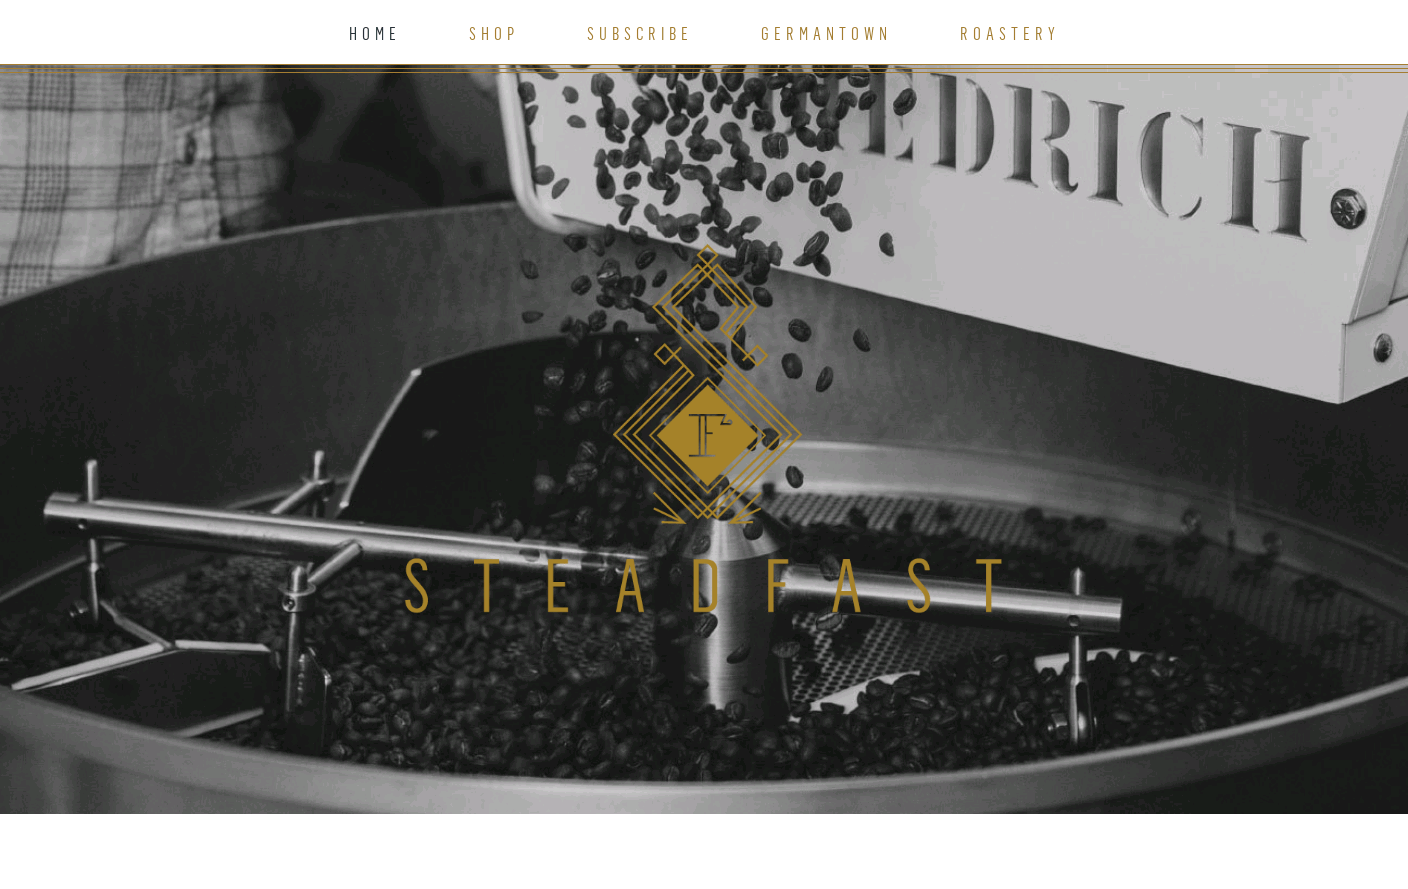 Steadfast Coffee